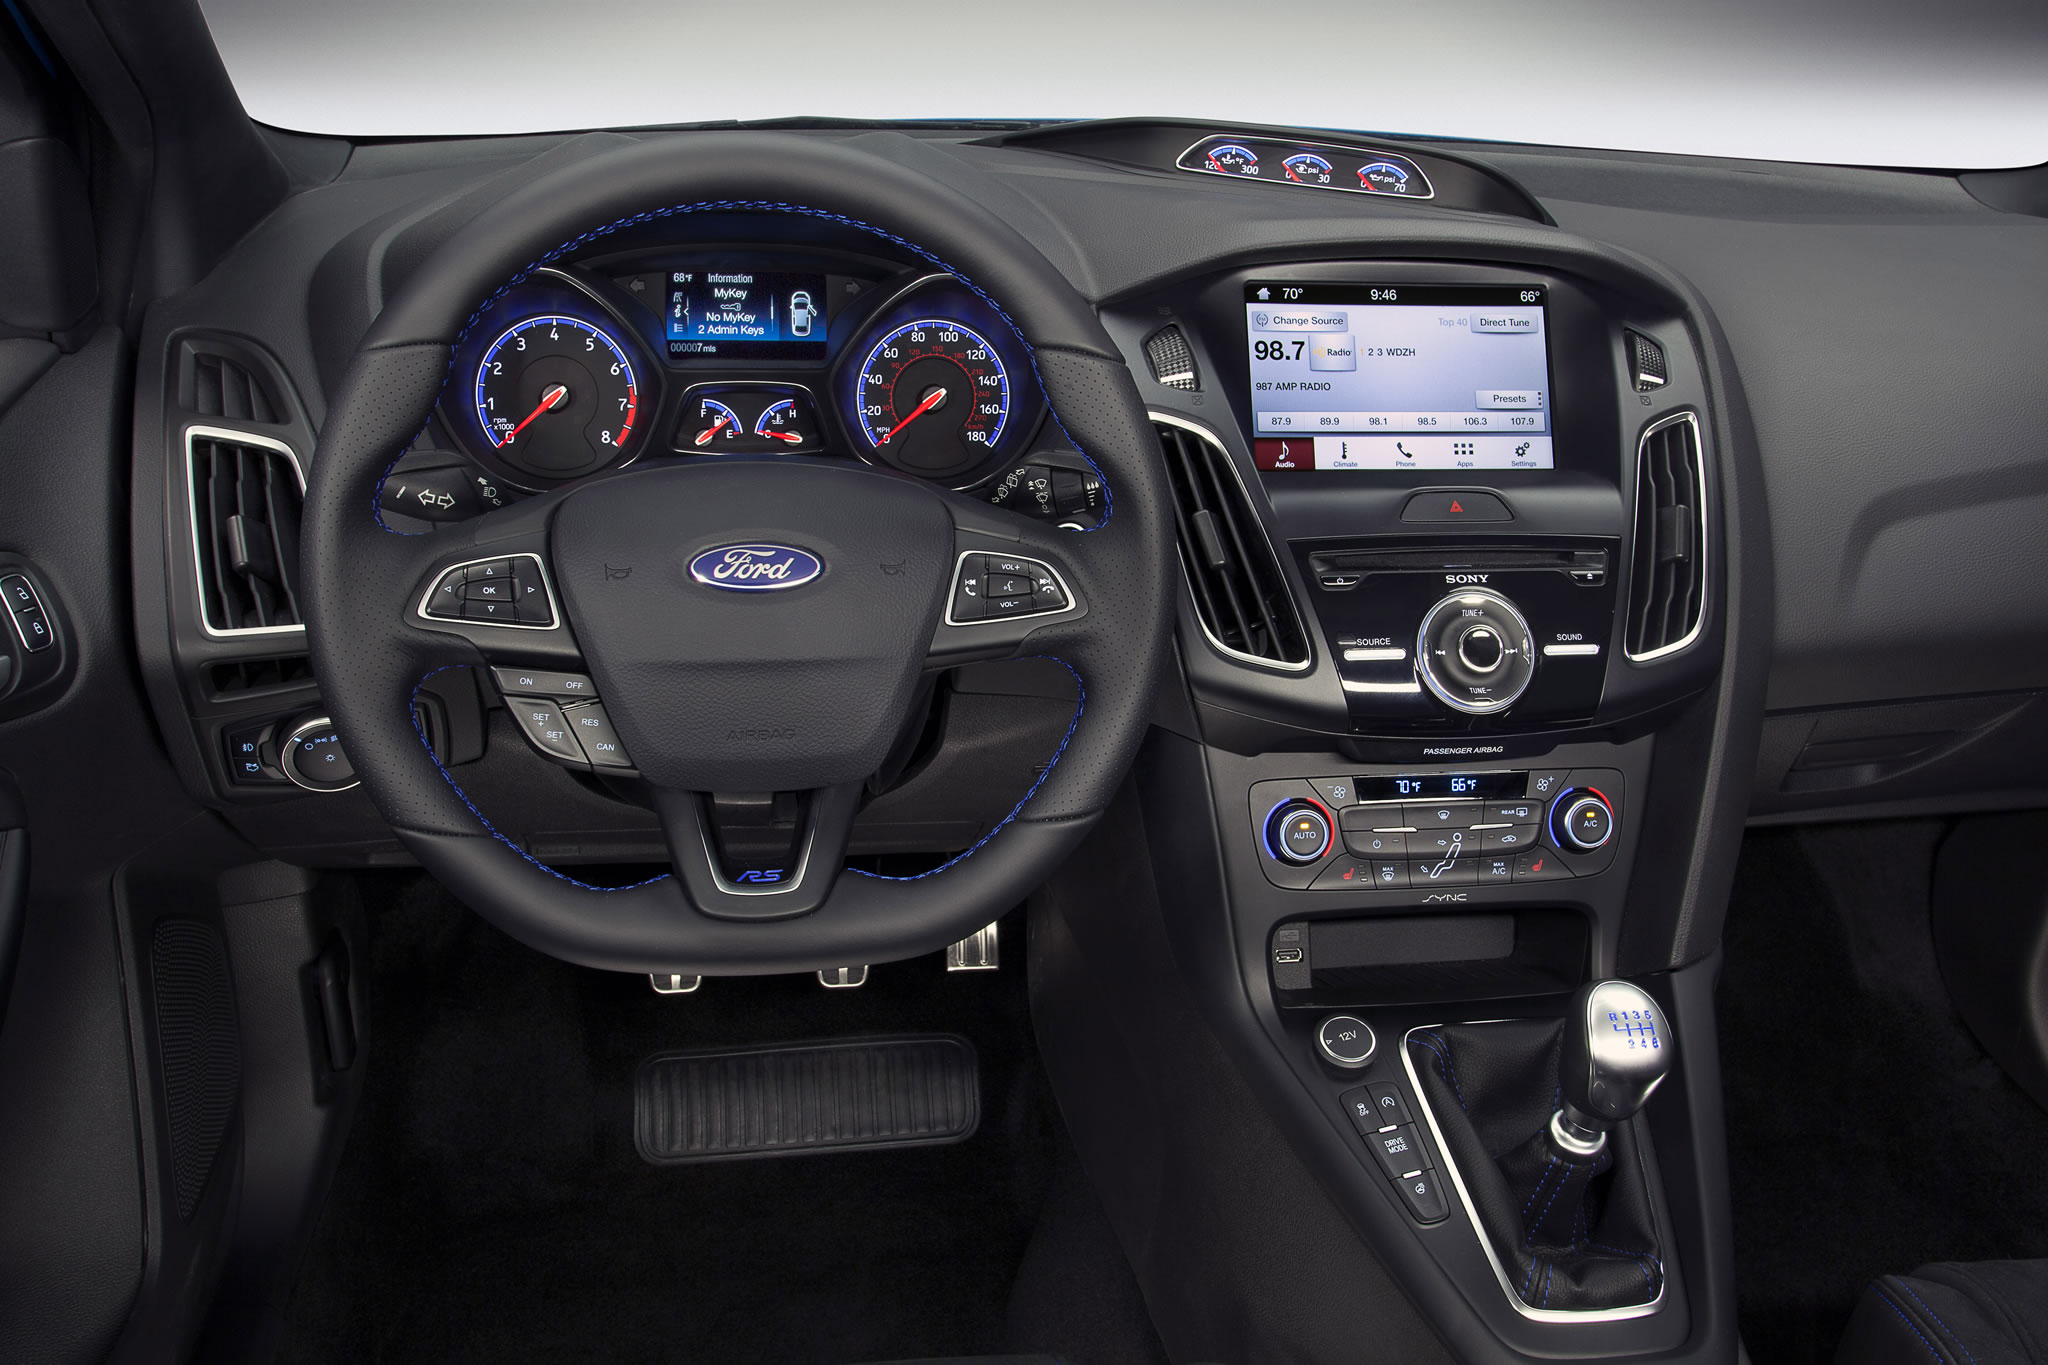 2016 Ford Focus Rs Interior Photo Steering Wheel Dashboard